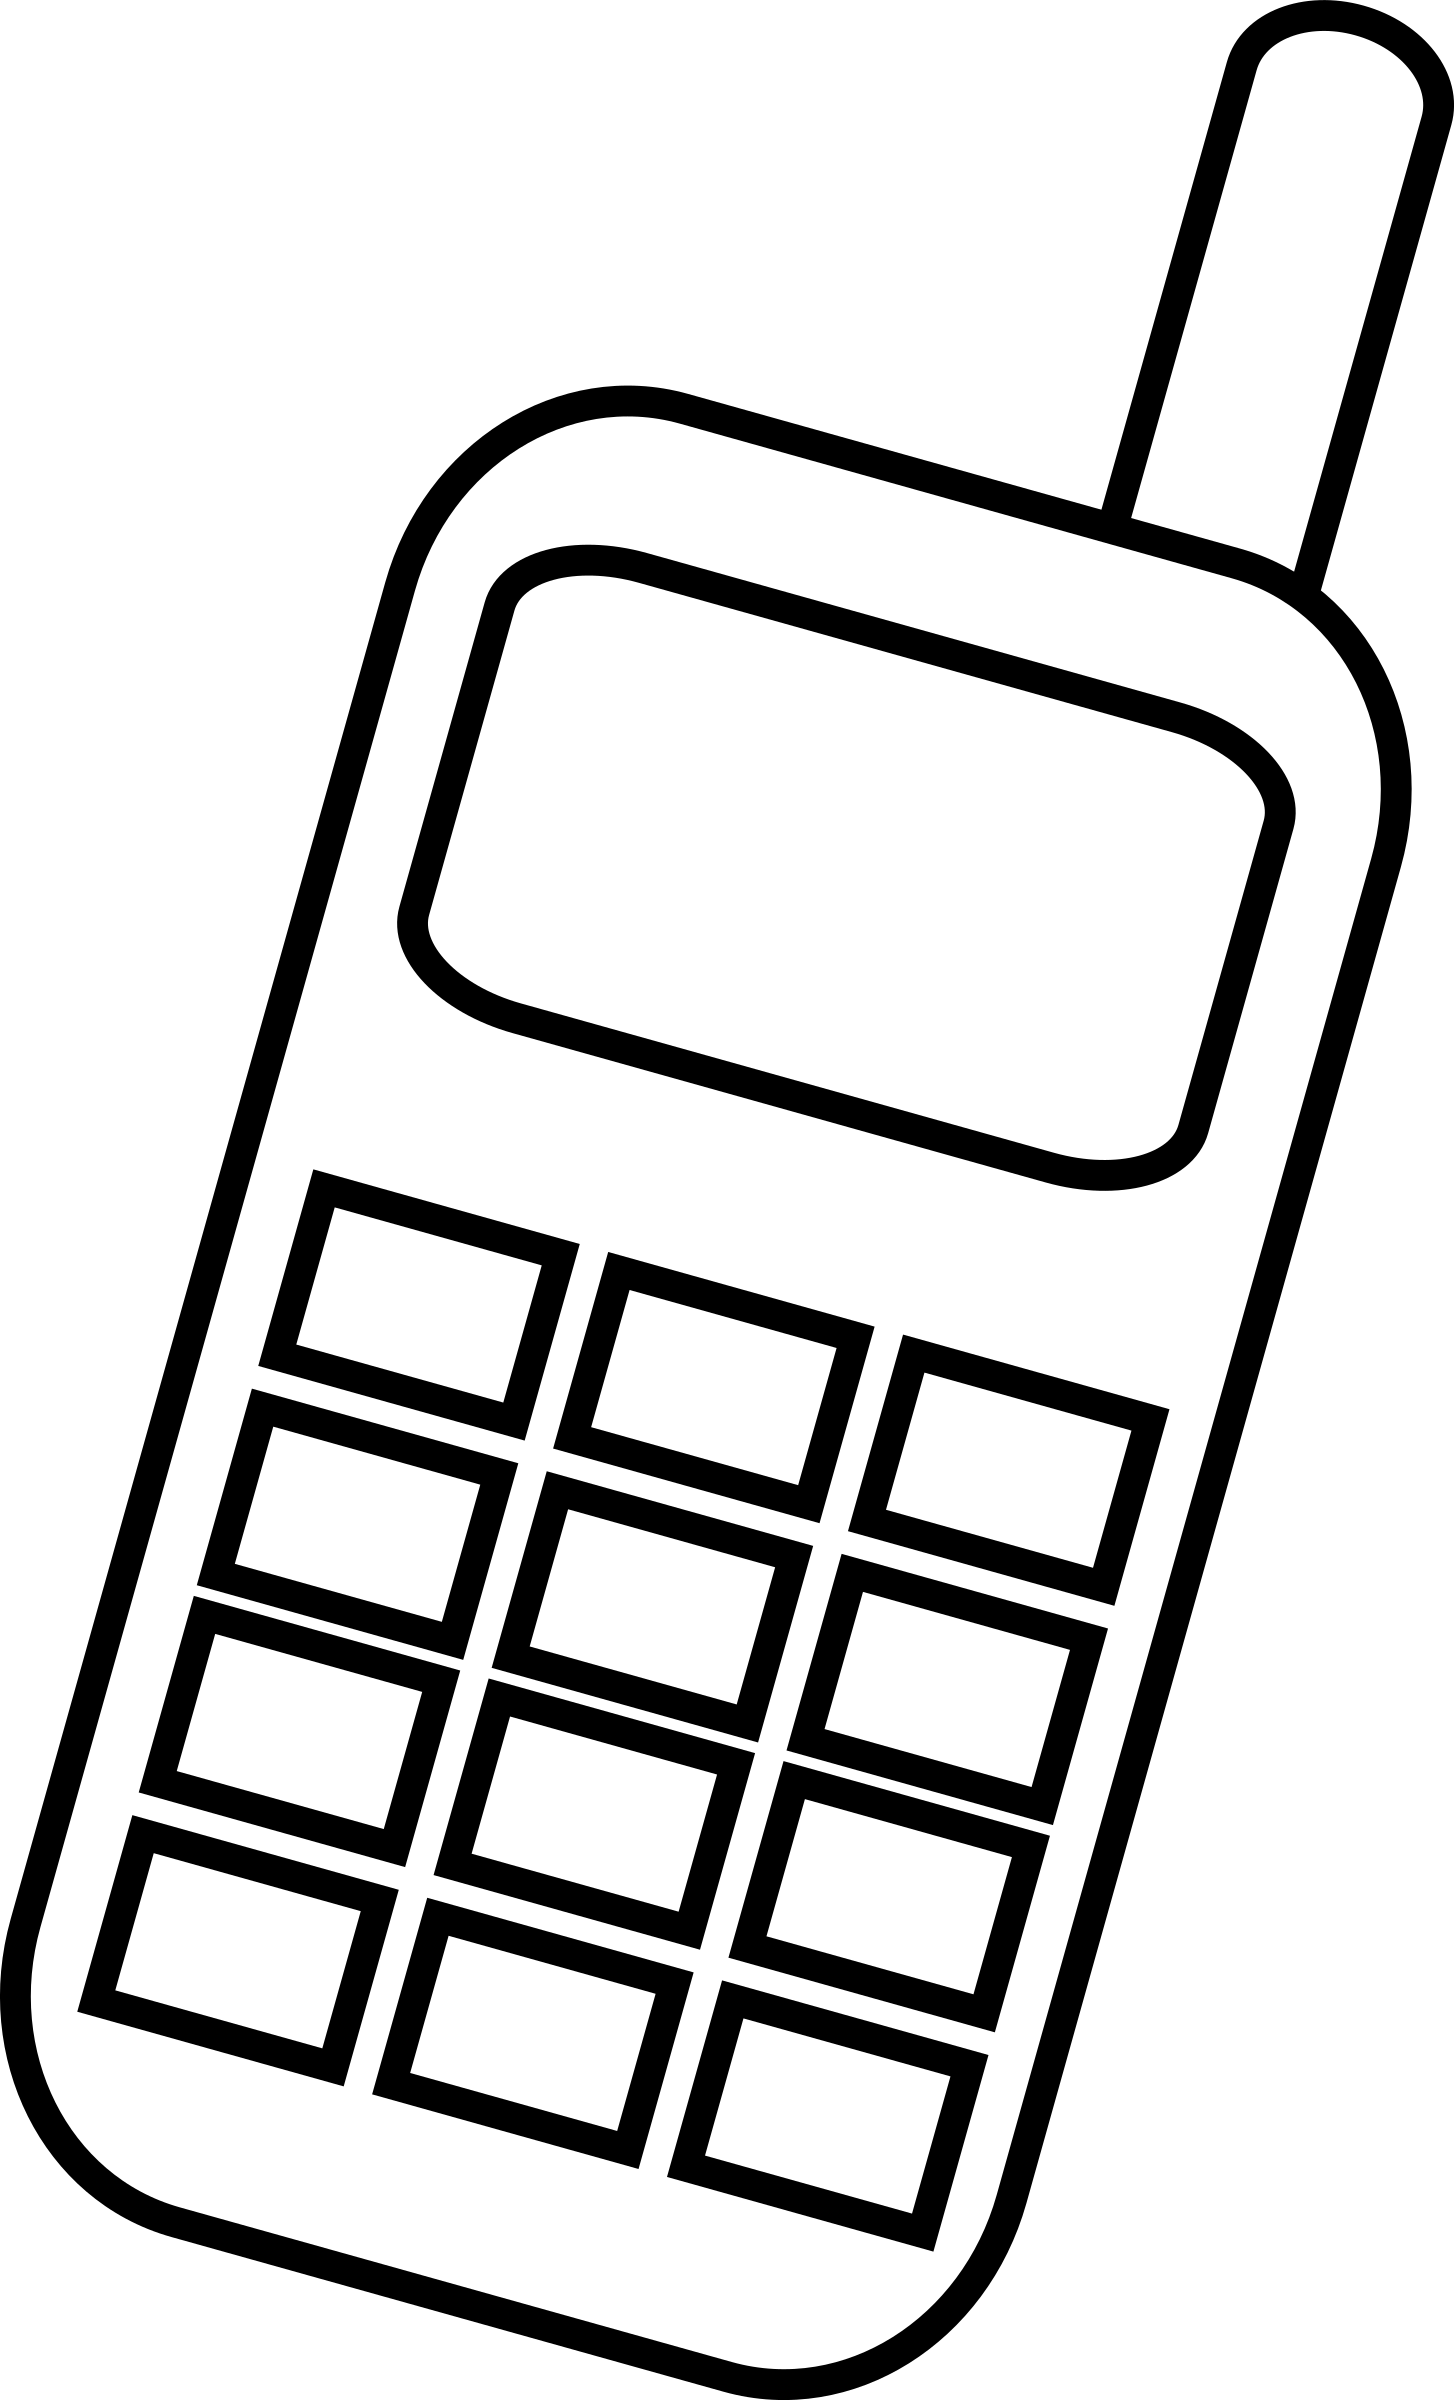 Icon - mobile phone by krzysiu